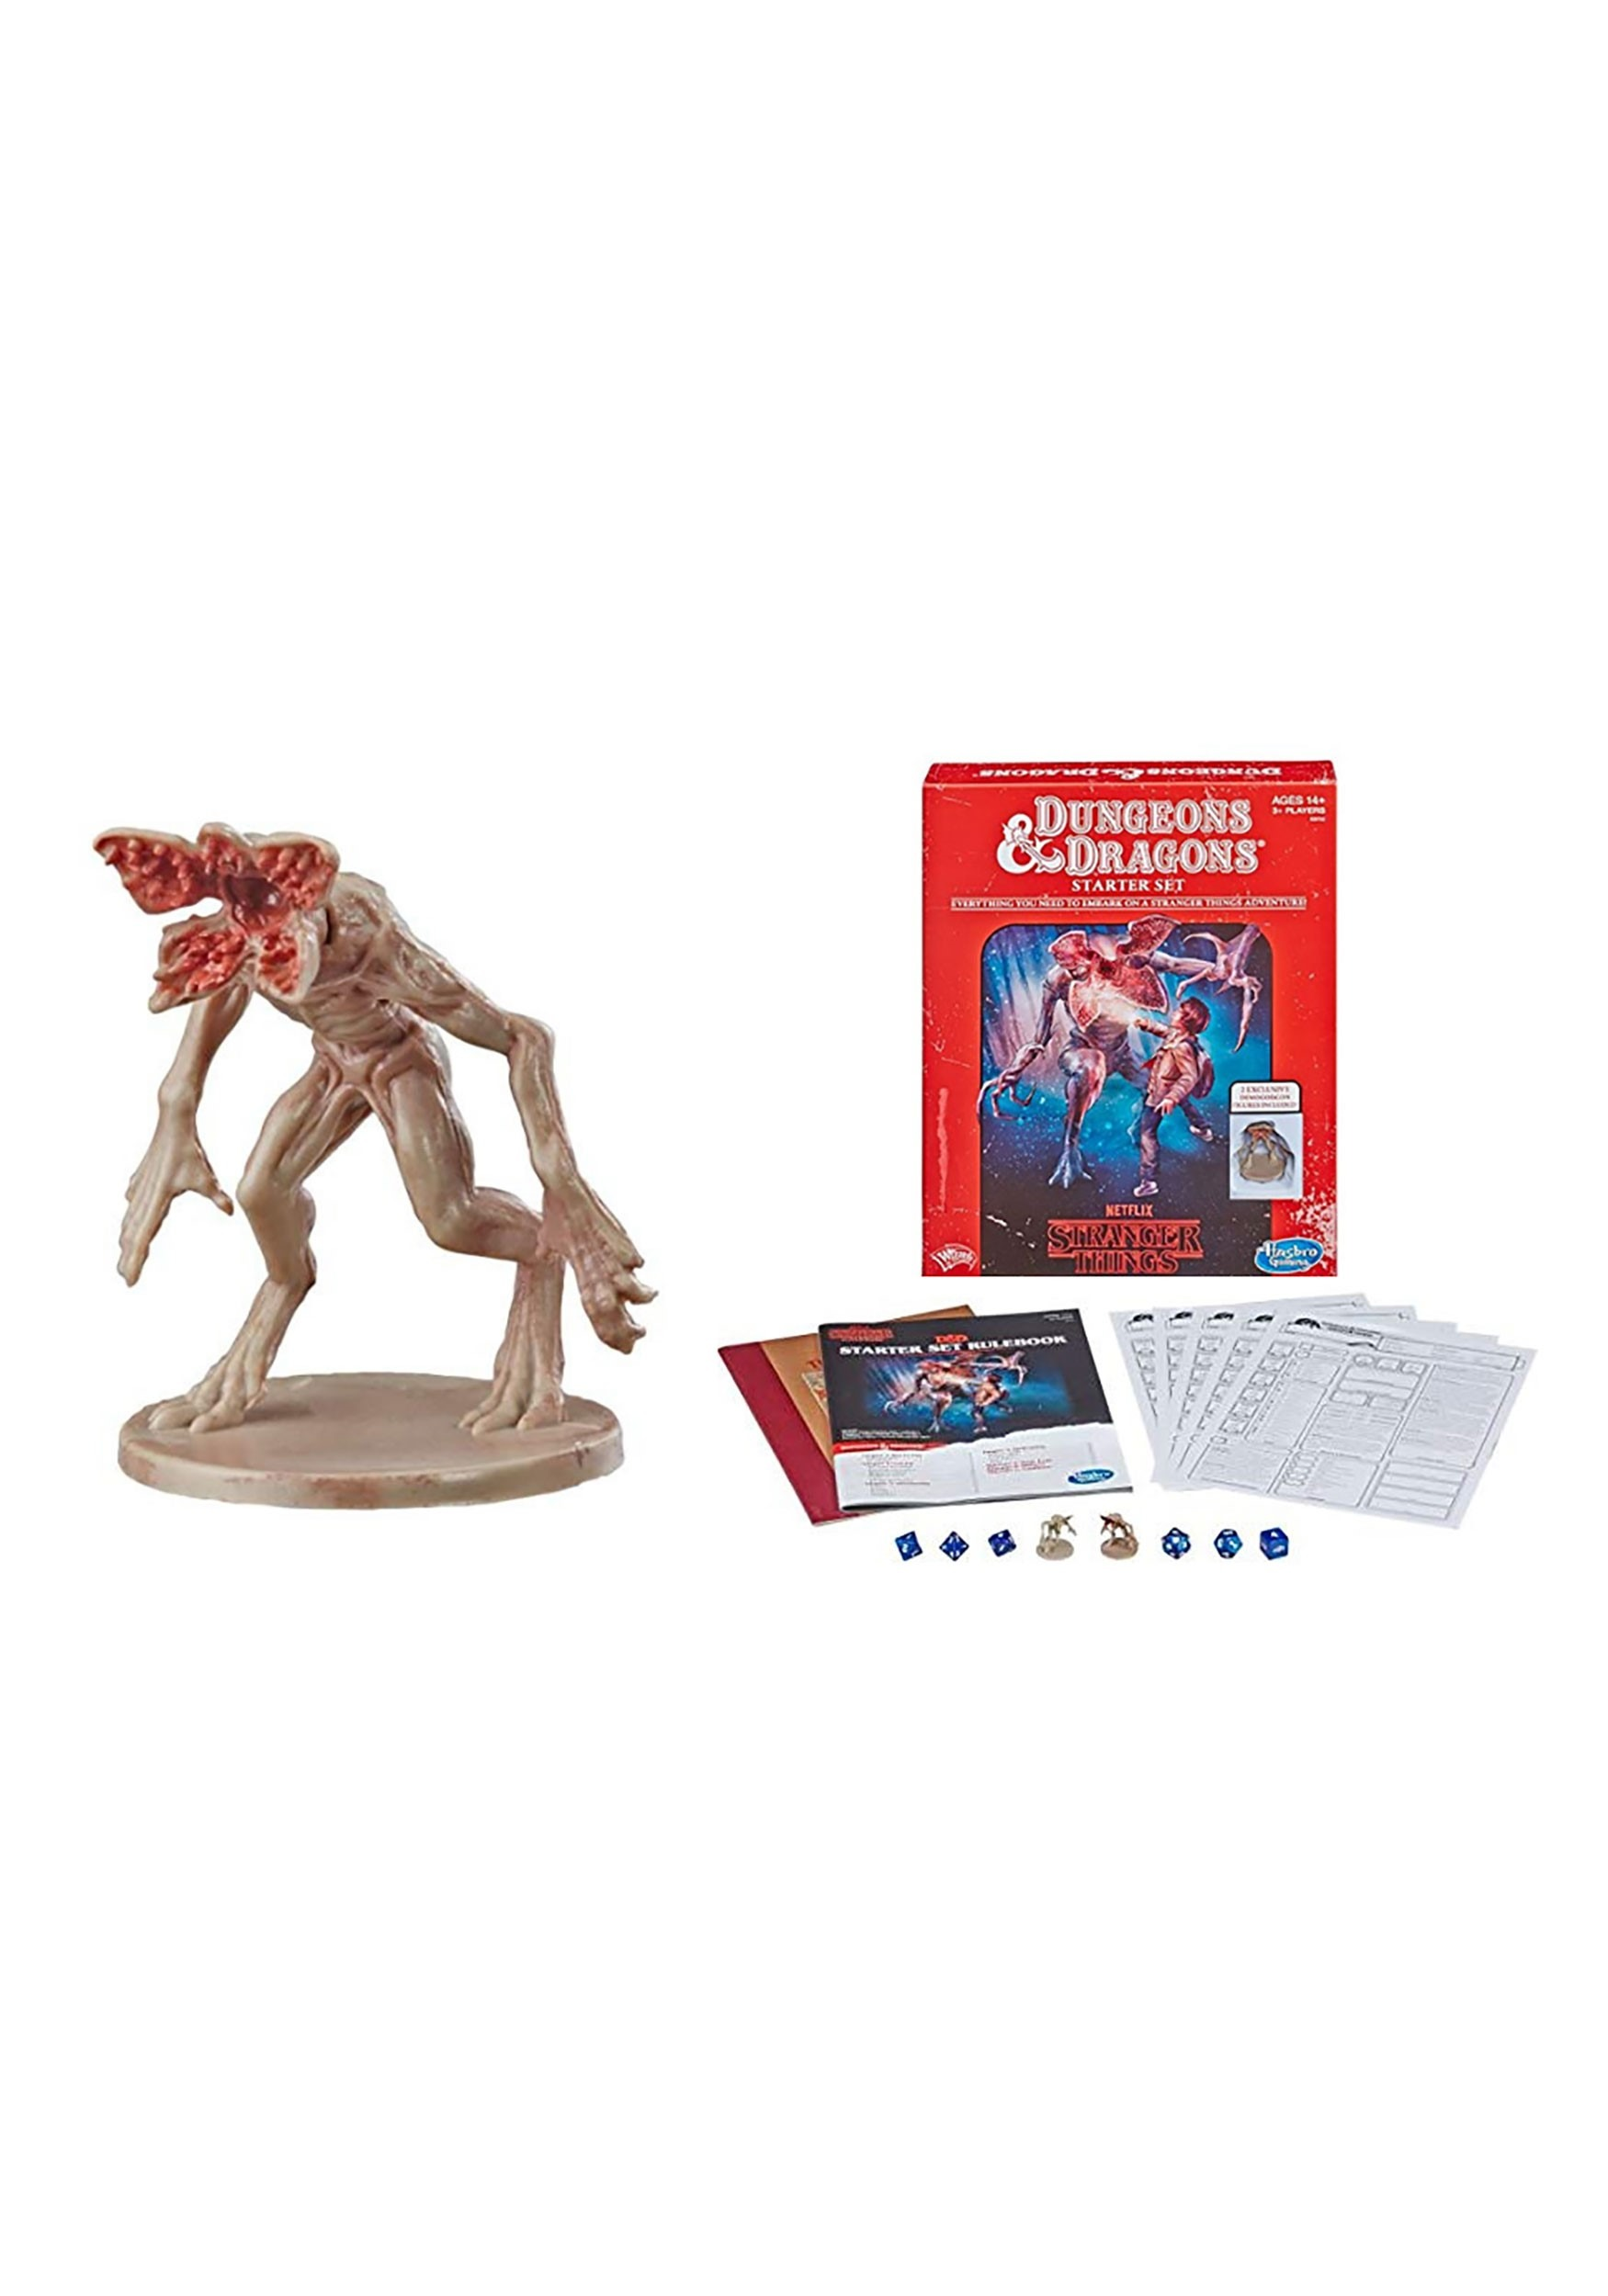 Dungeons & Dragons Roleplaying Game Starter Stranger Things